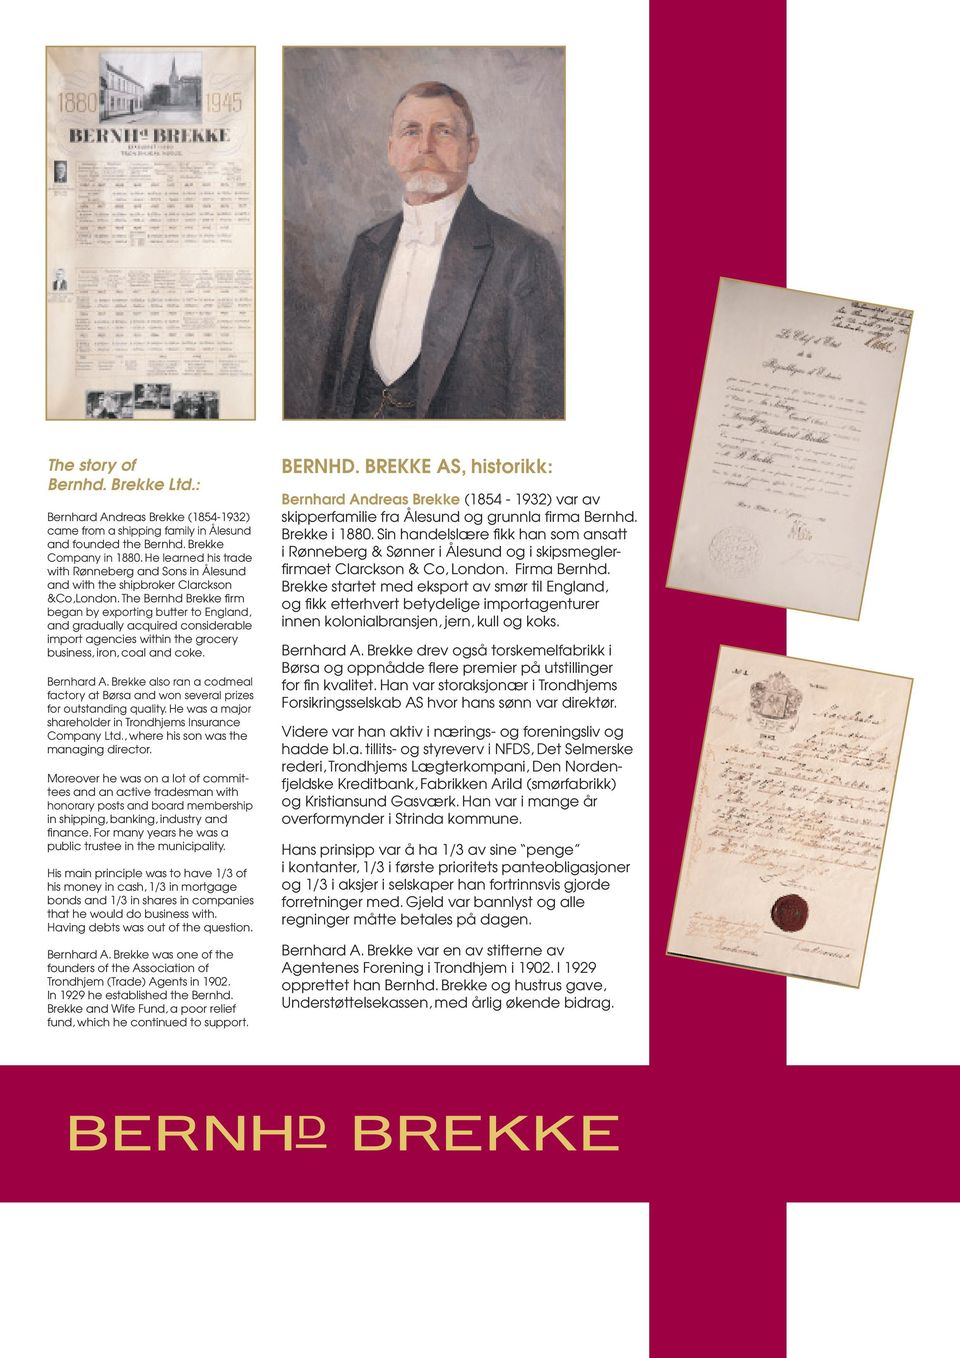 The Bernhd Brekke firm began by exporting butter to England, and gradually acquired considerable import agencies within the grocery business, iron, coal and coke. Bernhard A.